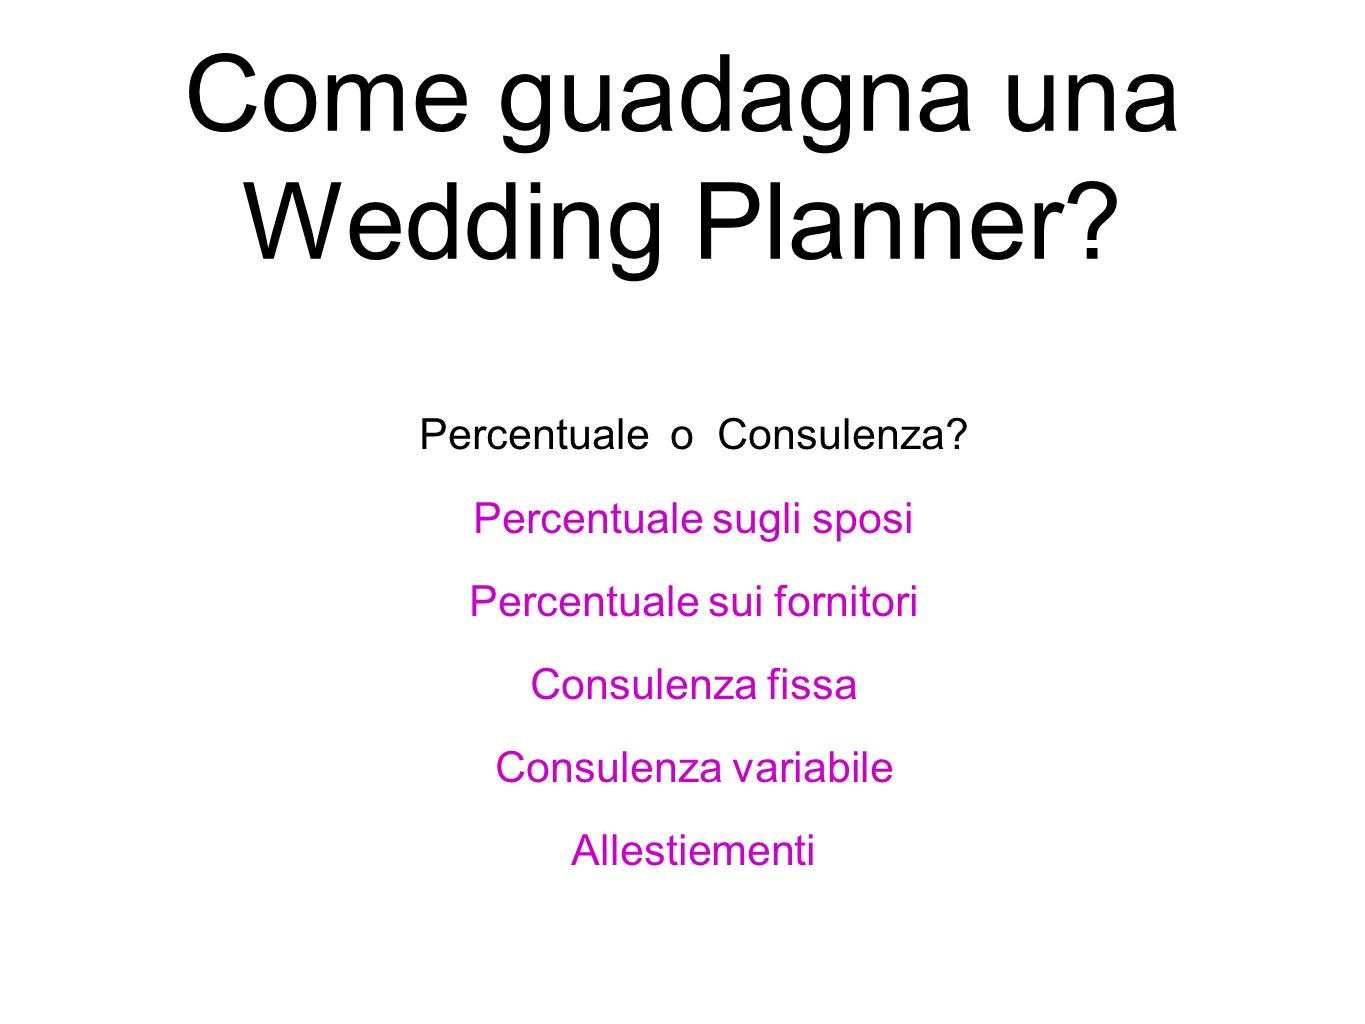 Come guadagna una Wedding Planner